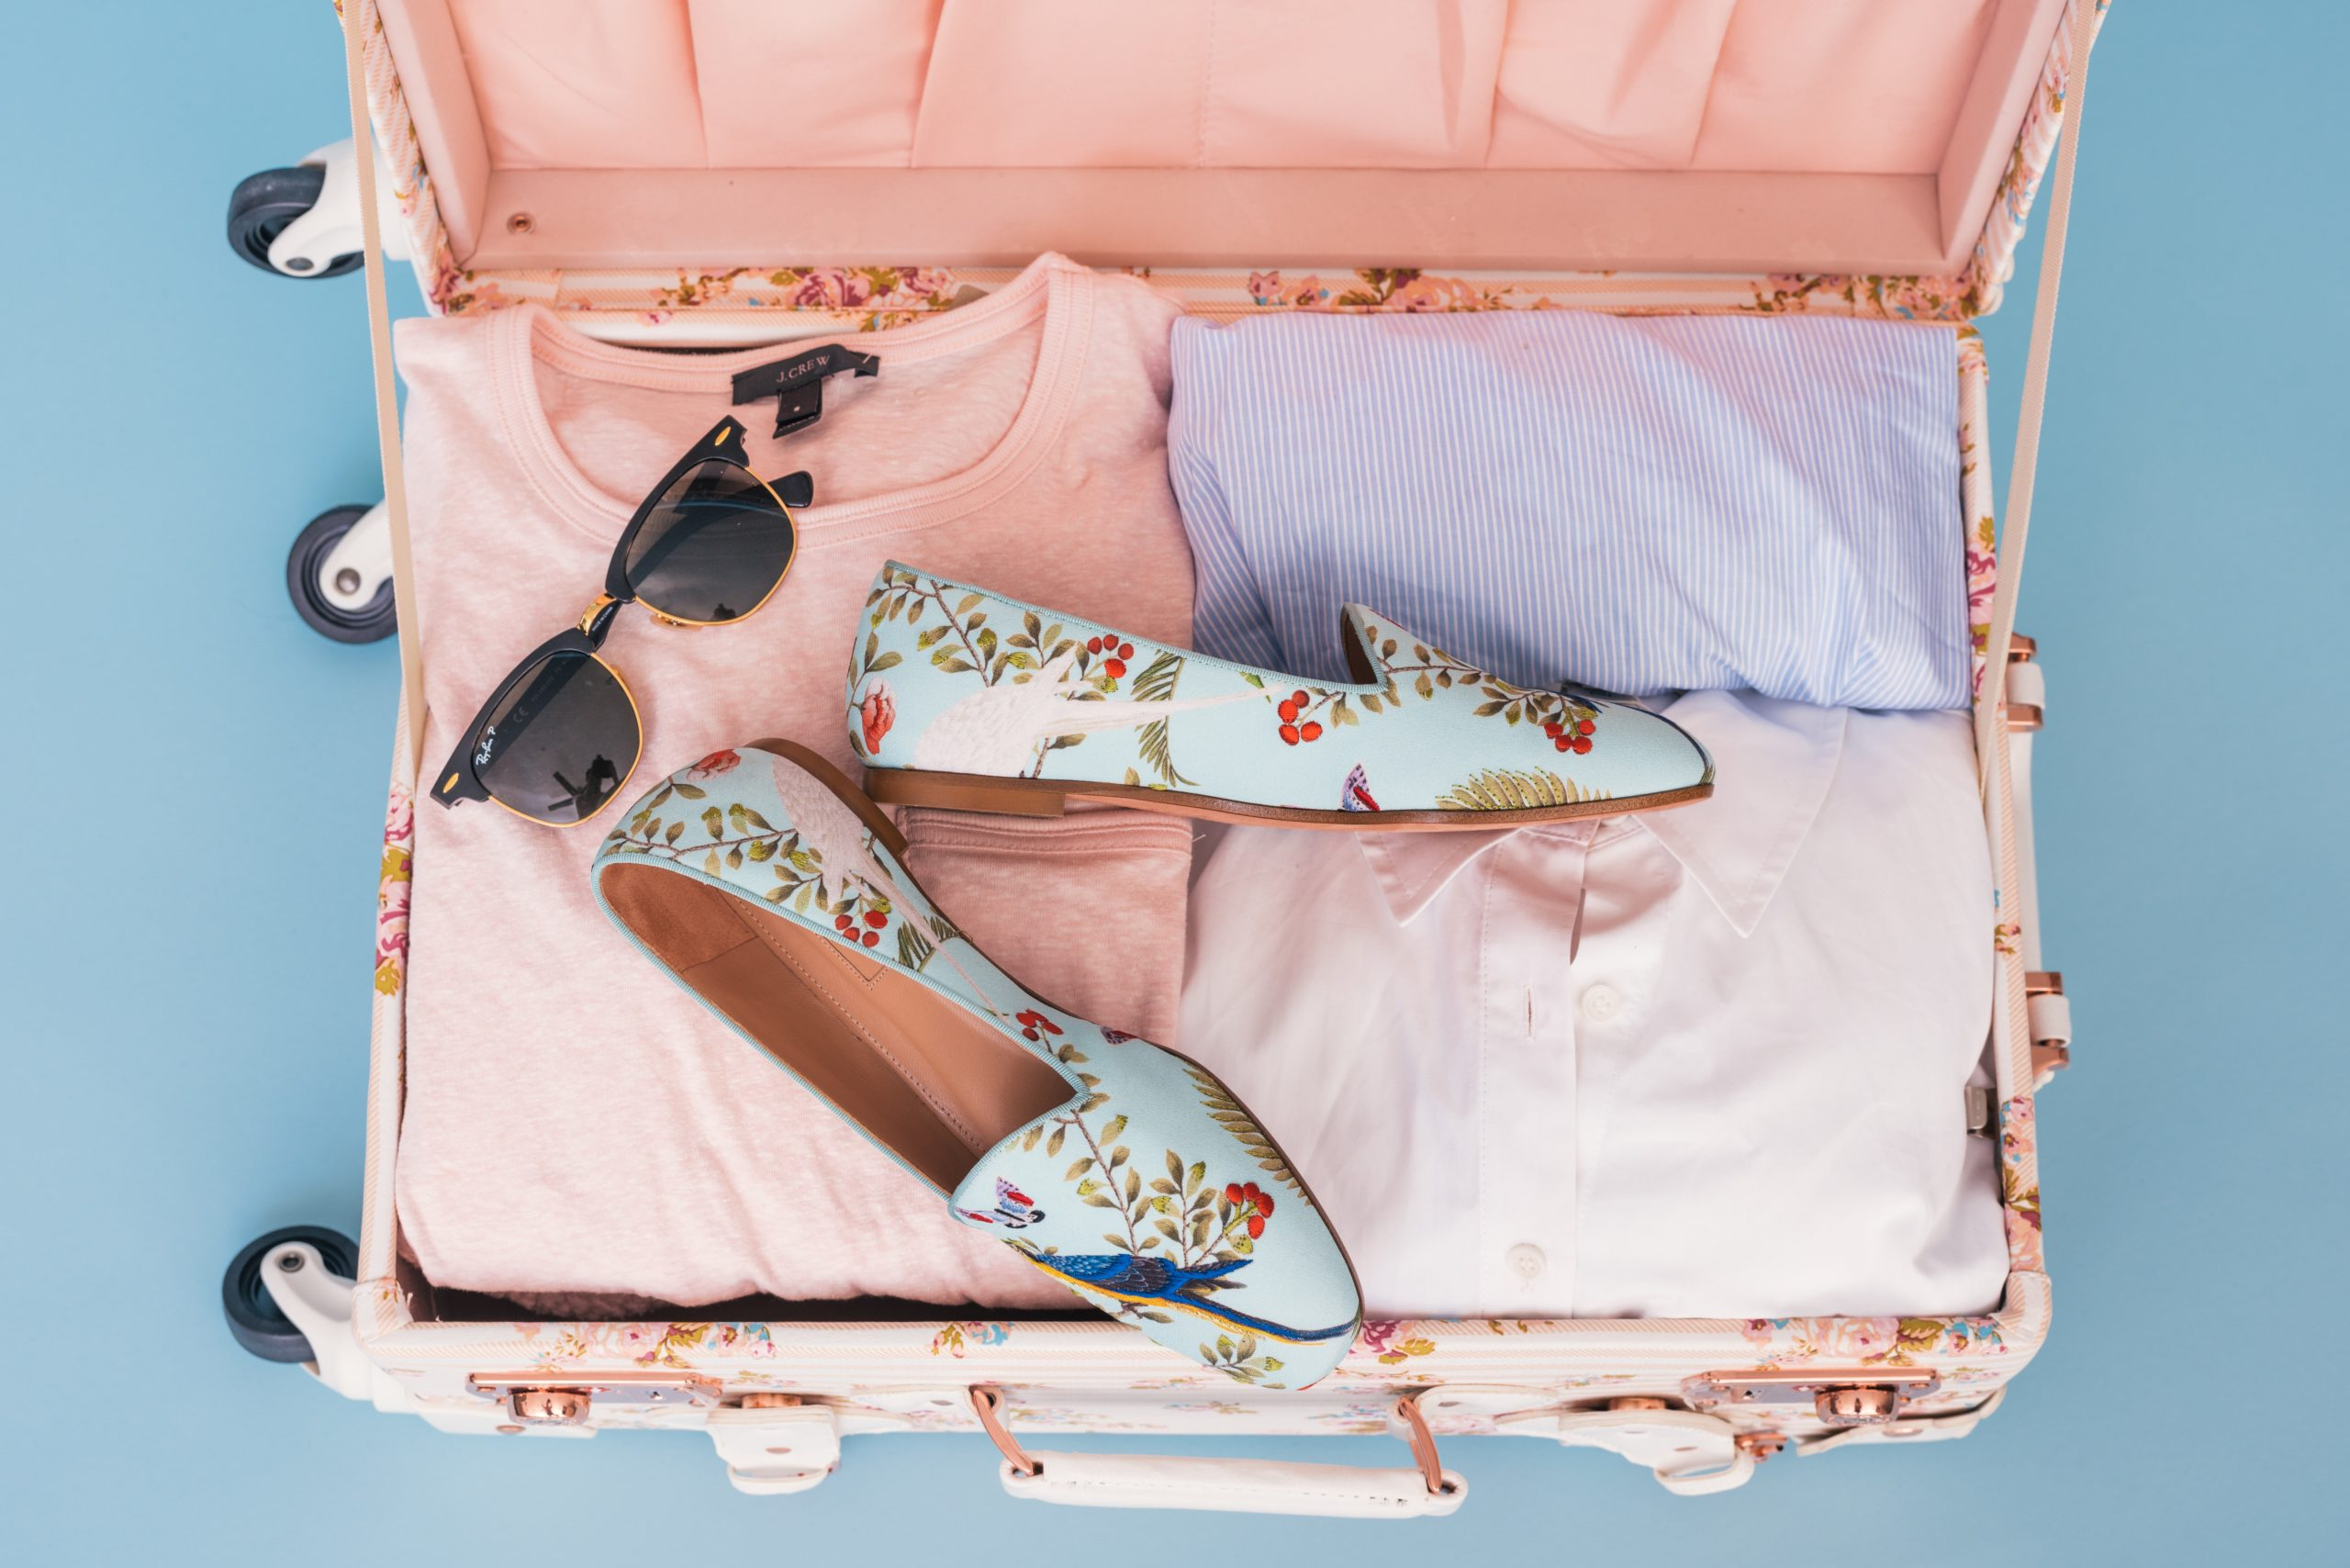 Pink suitcase packed neatly with essential travel items like sunglasses, shoes, and shirts.